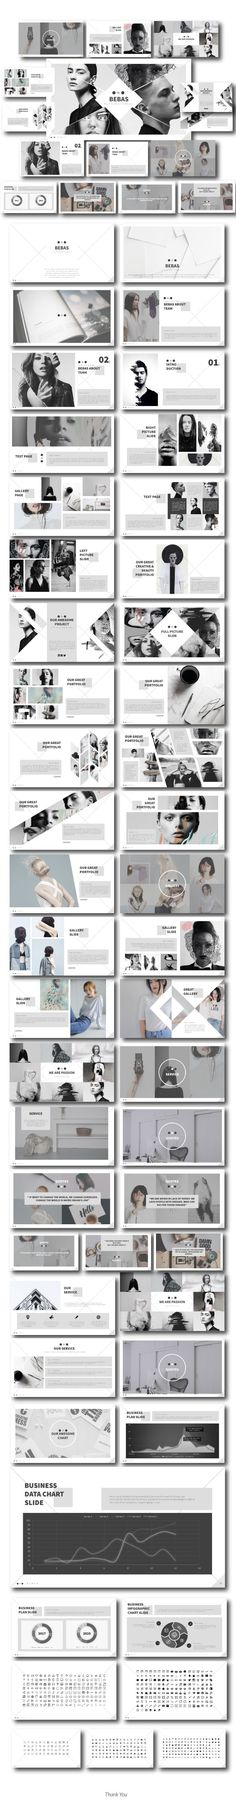 Bebas Multipurpose Template - #Business #PowerPoint #Templates Download here: https://graphicriver.net/item/bebas-multipurpose-template/20270315?ref=alena994